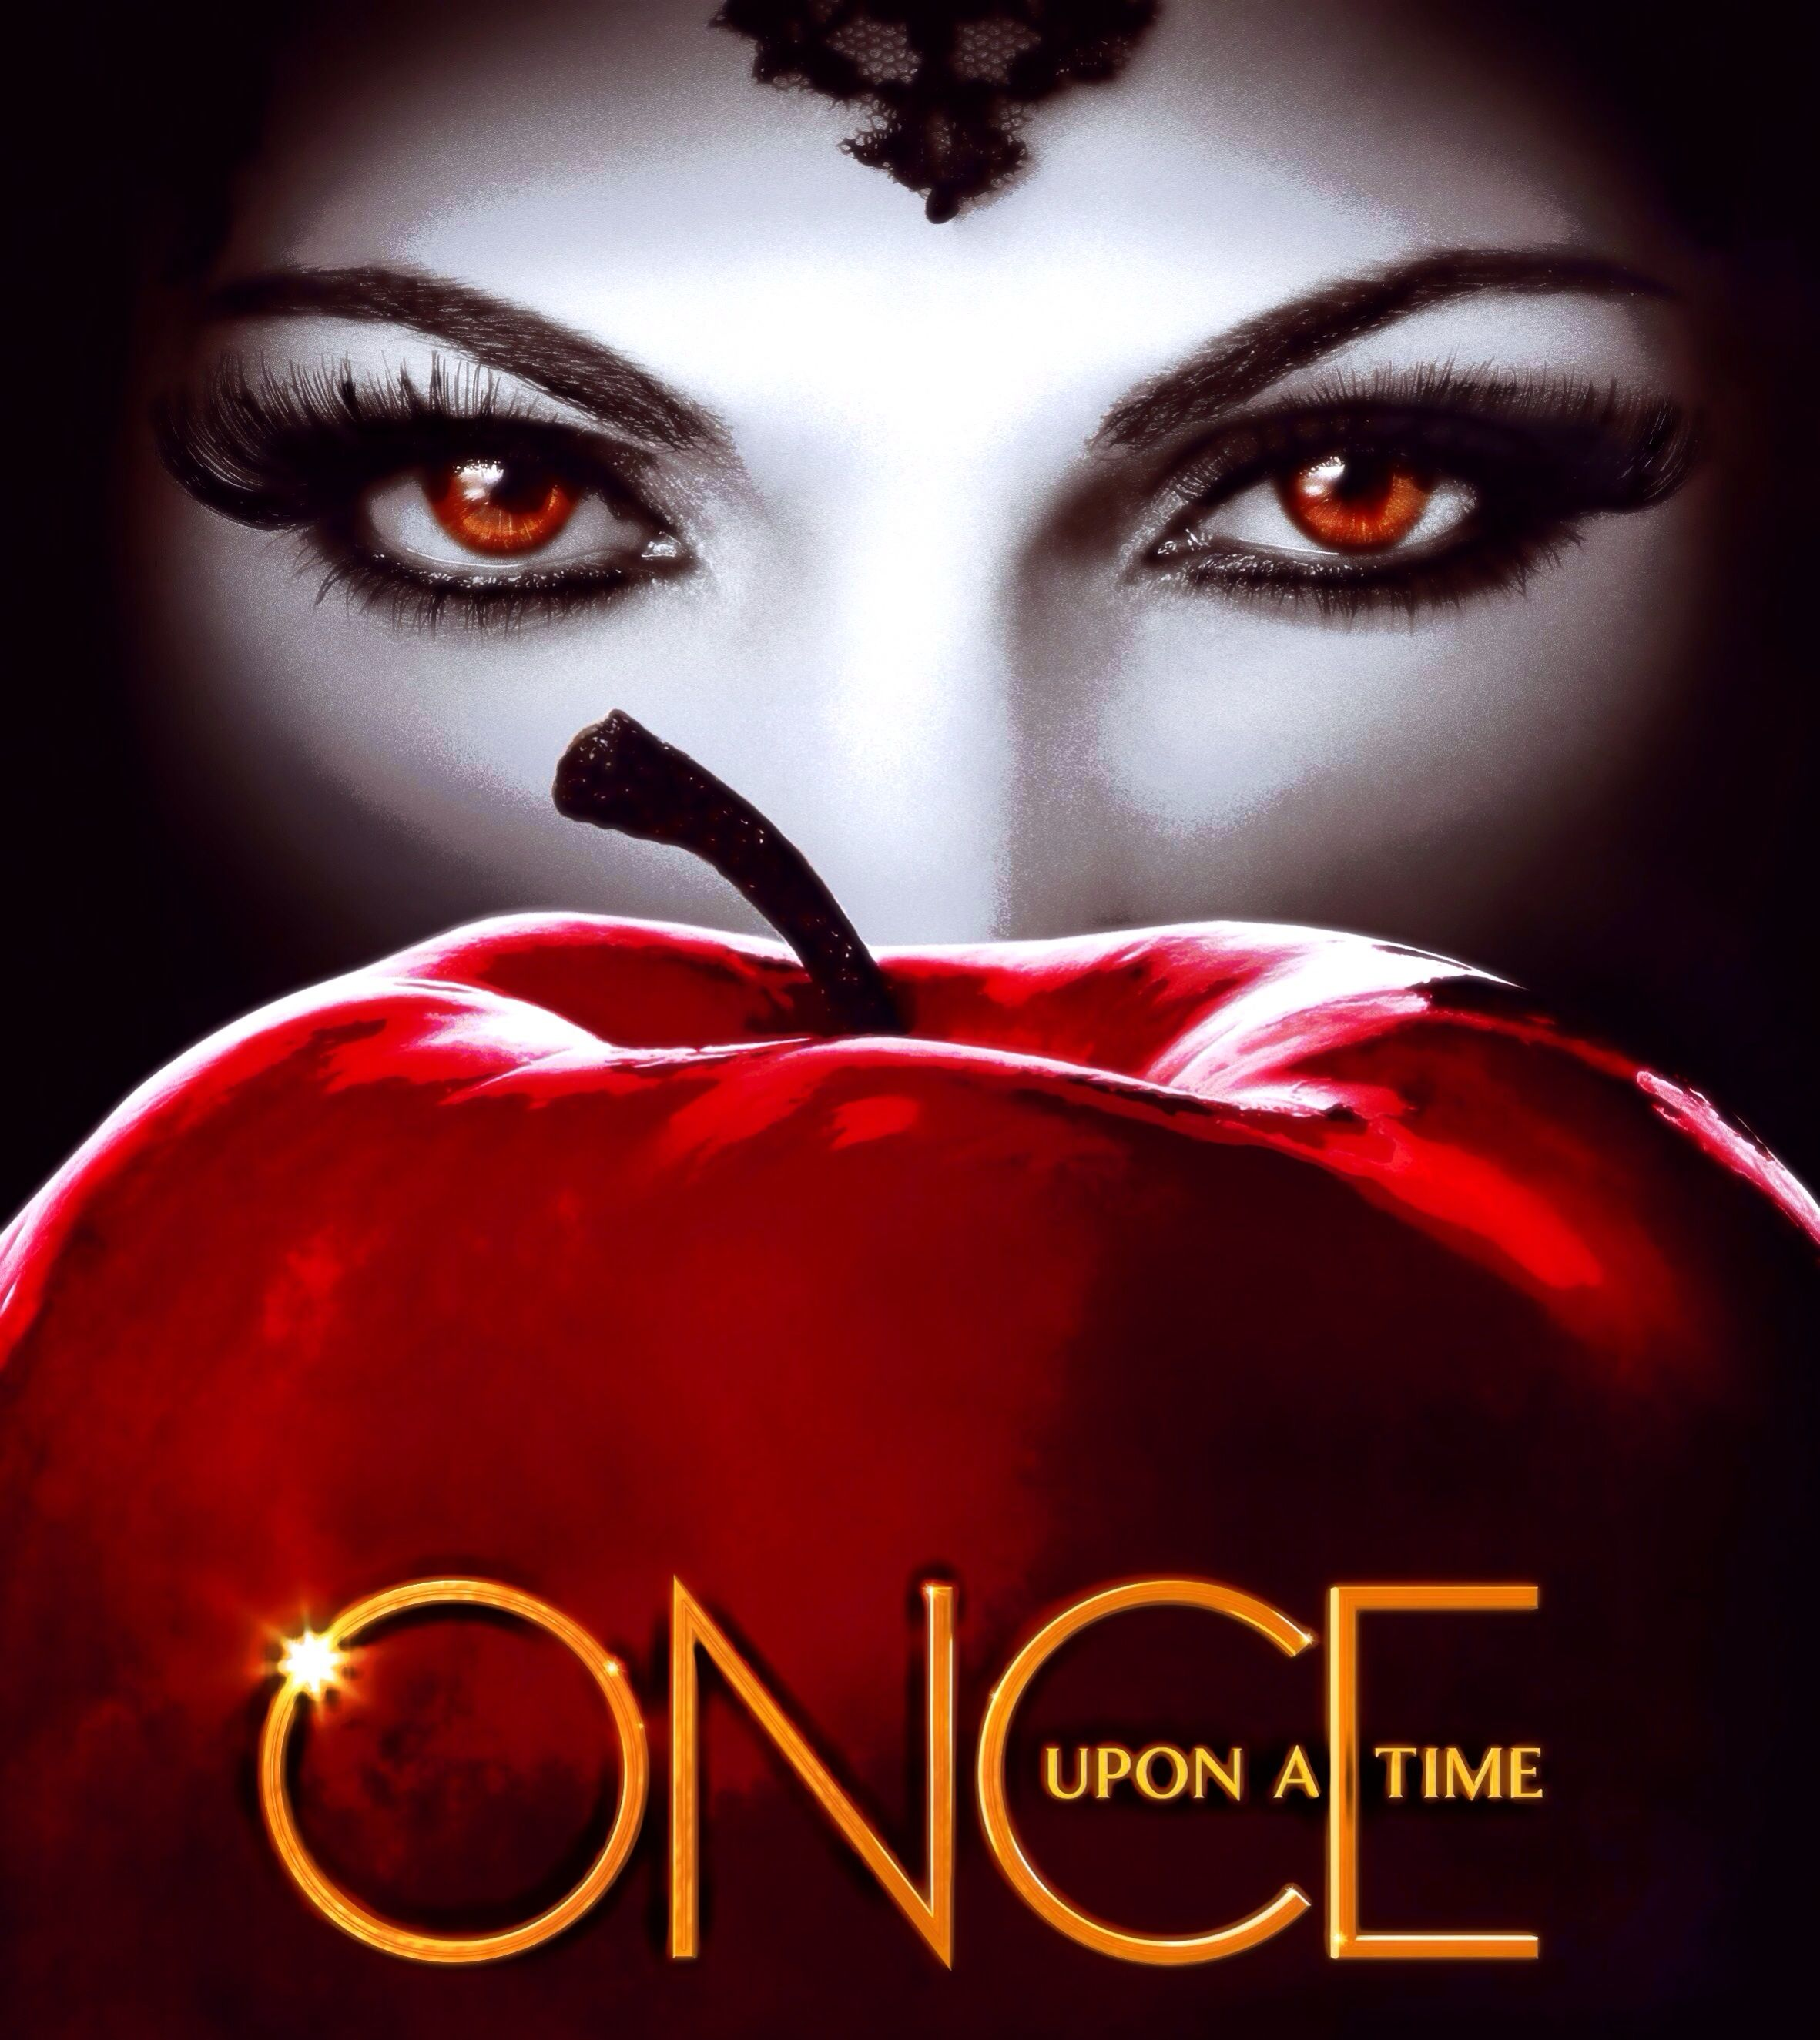 The evil queen and her poison apple Once upon a time